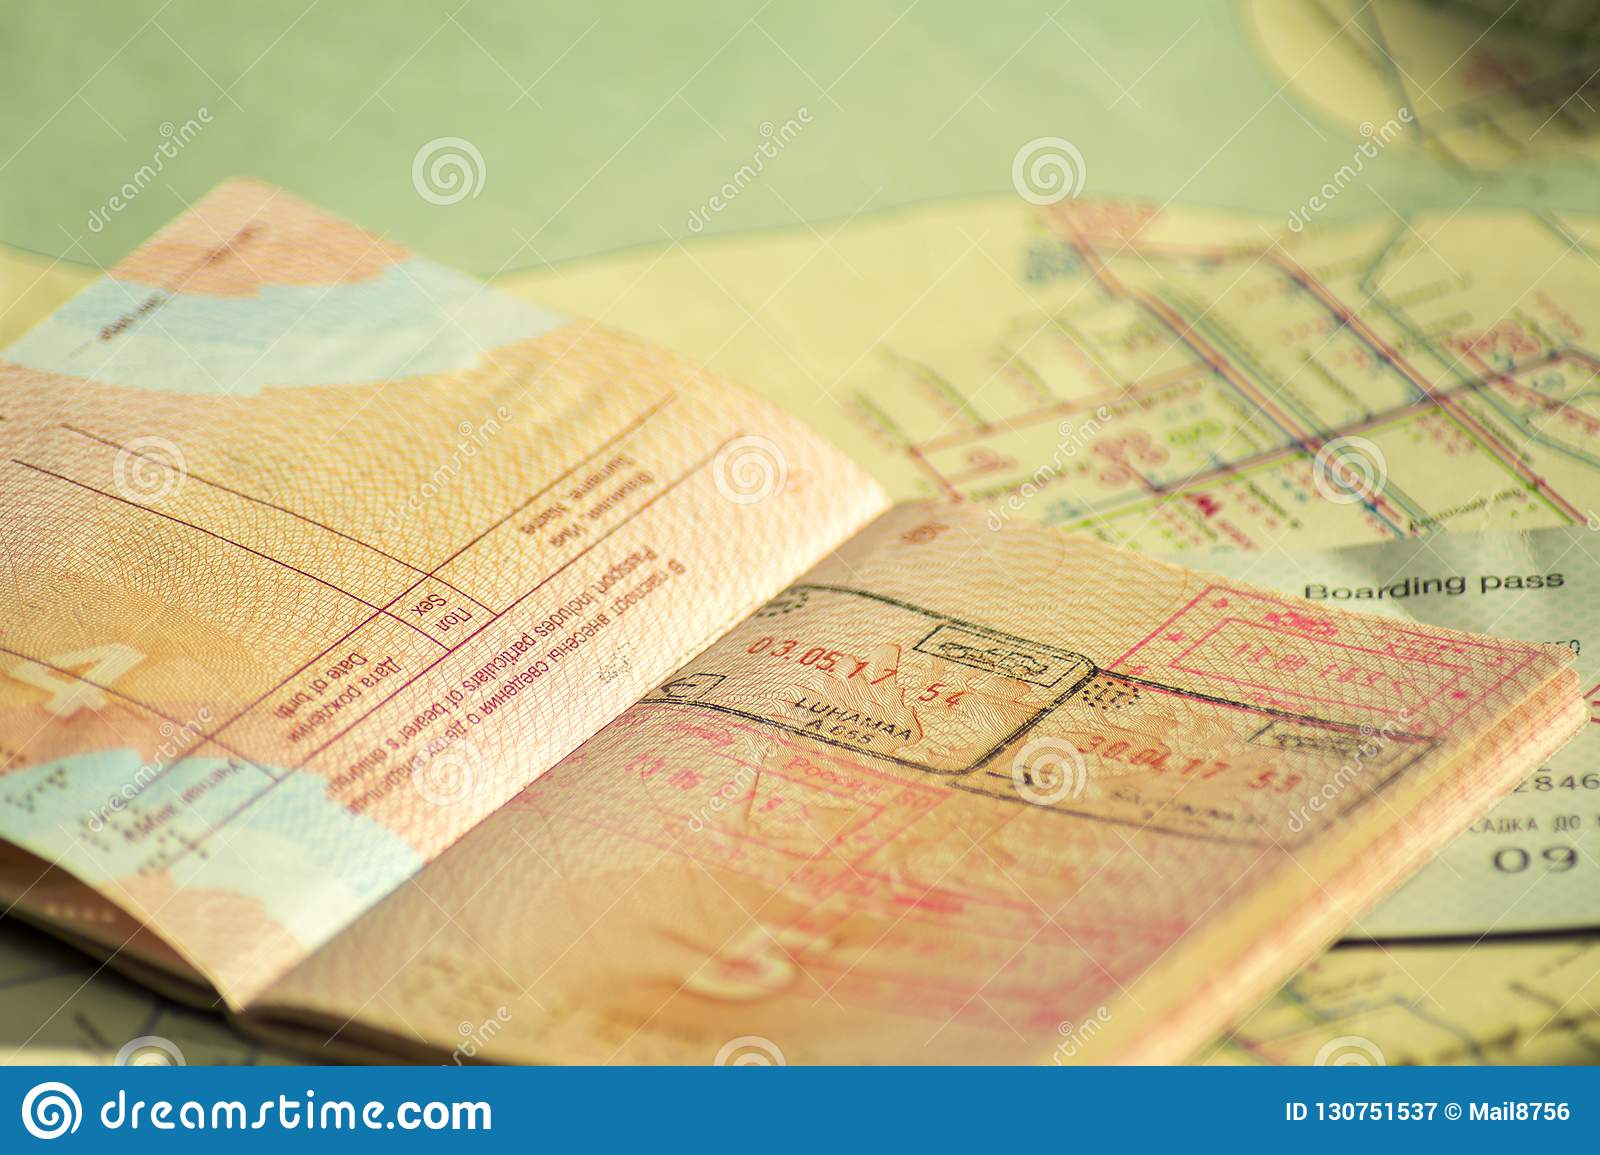 The concept of travel. Russian passport with visas. Passport and plane ticket is on the old map. Sunlight and shadow